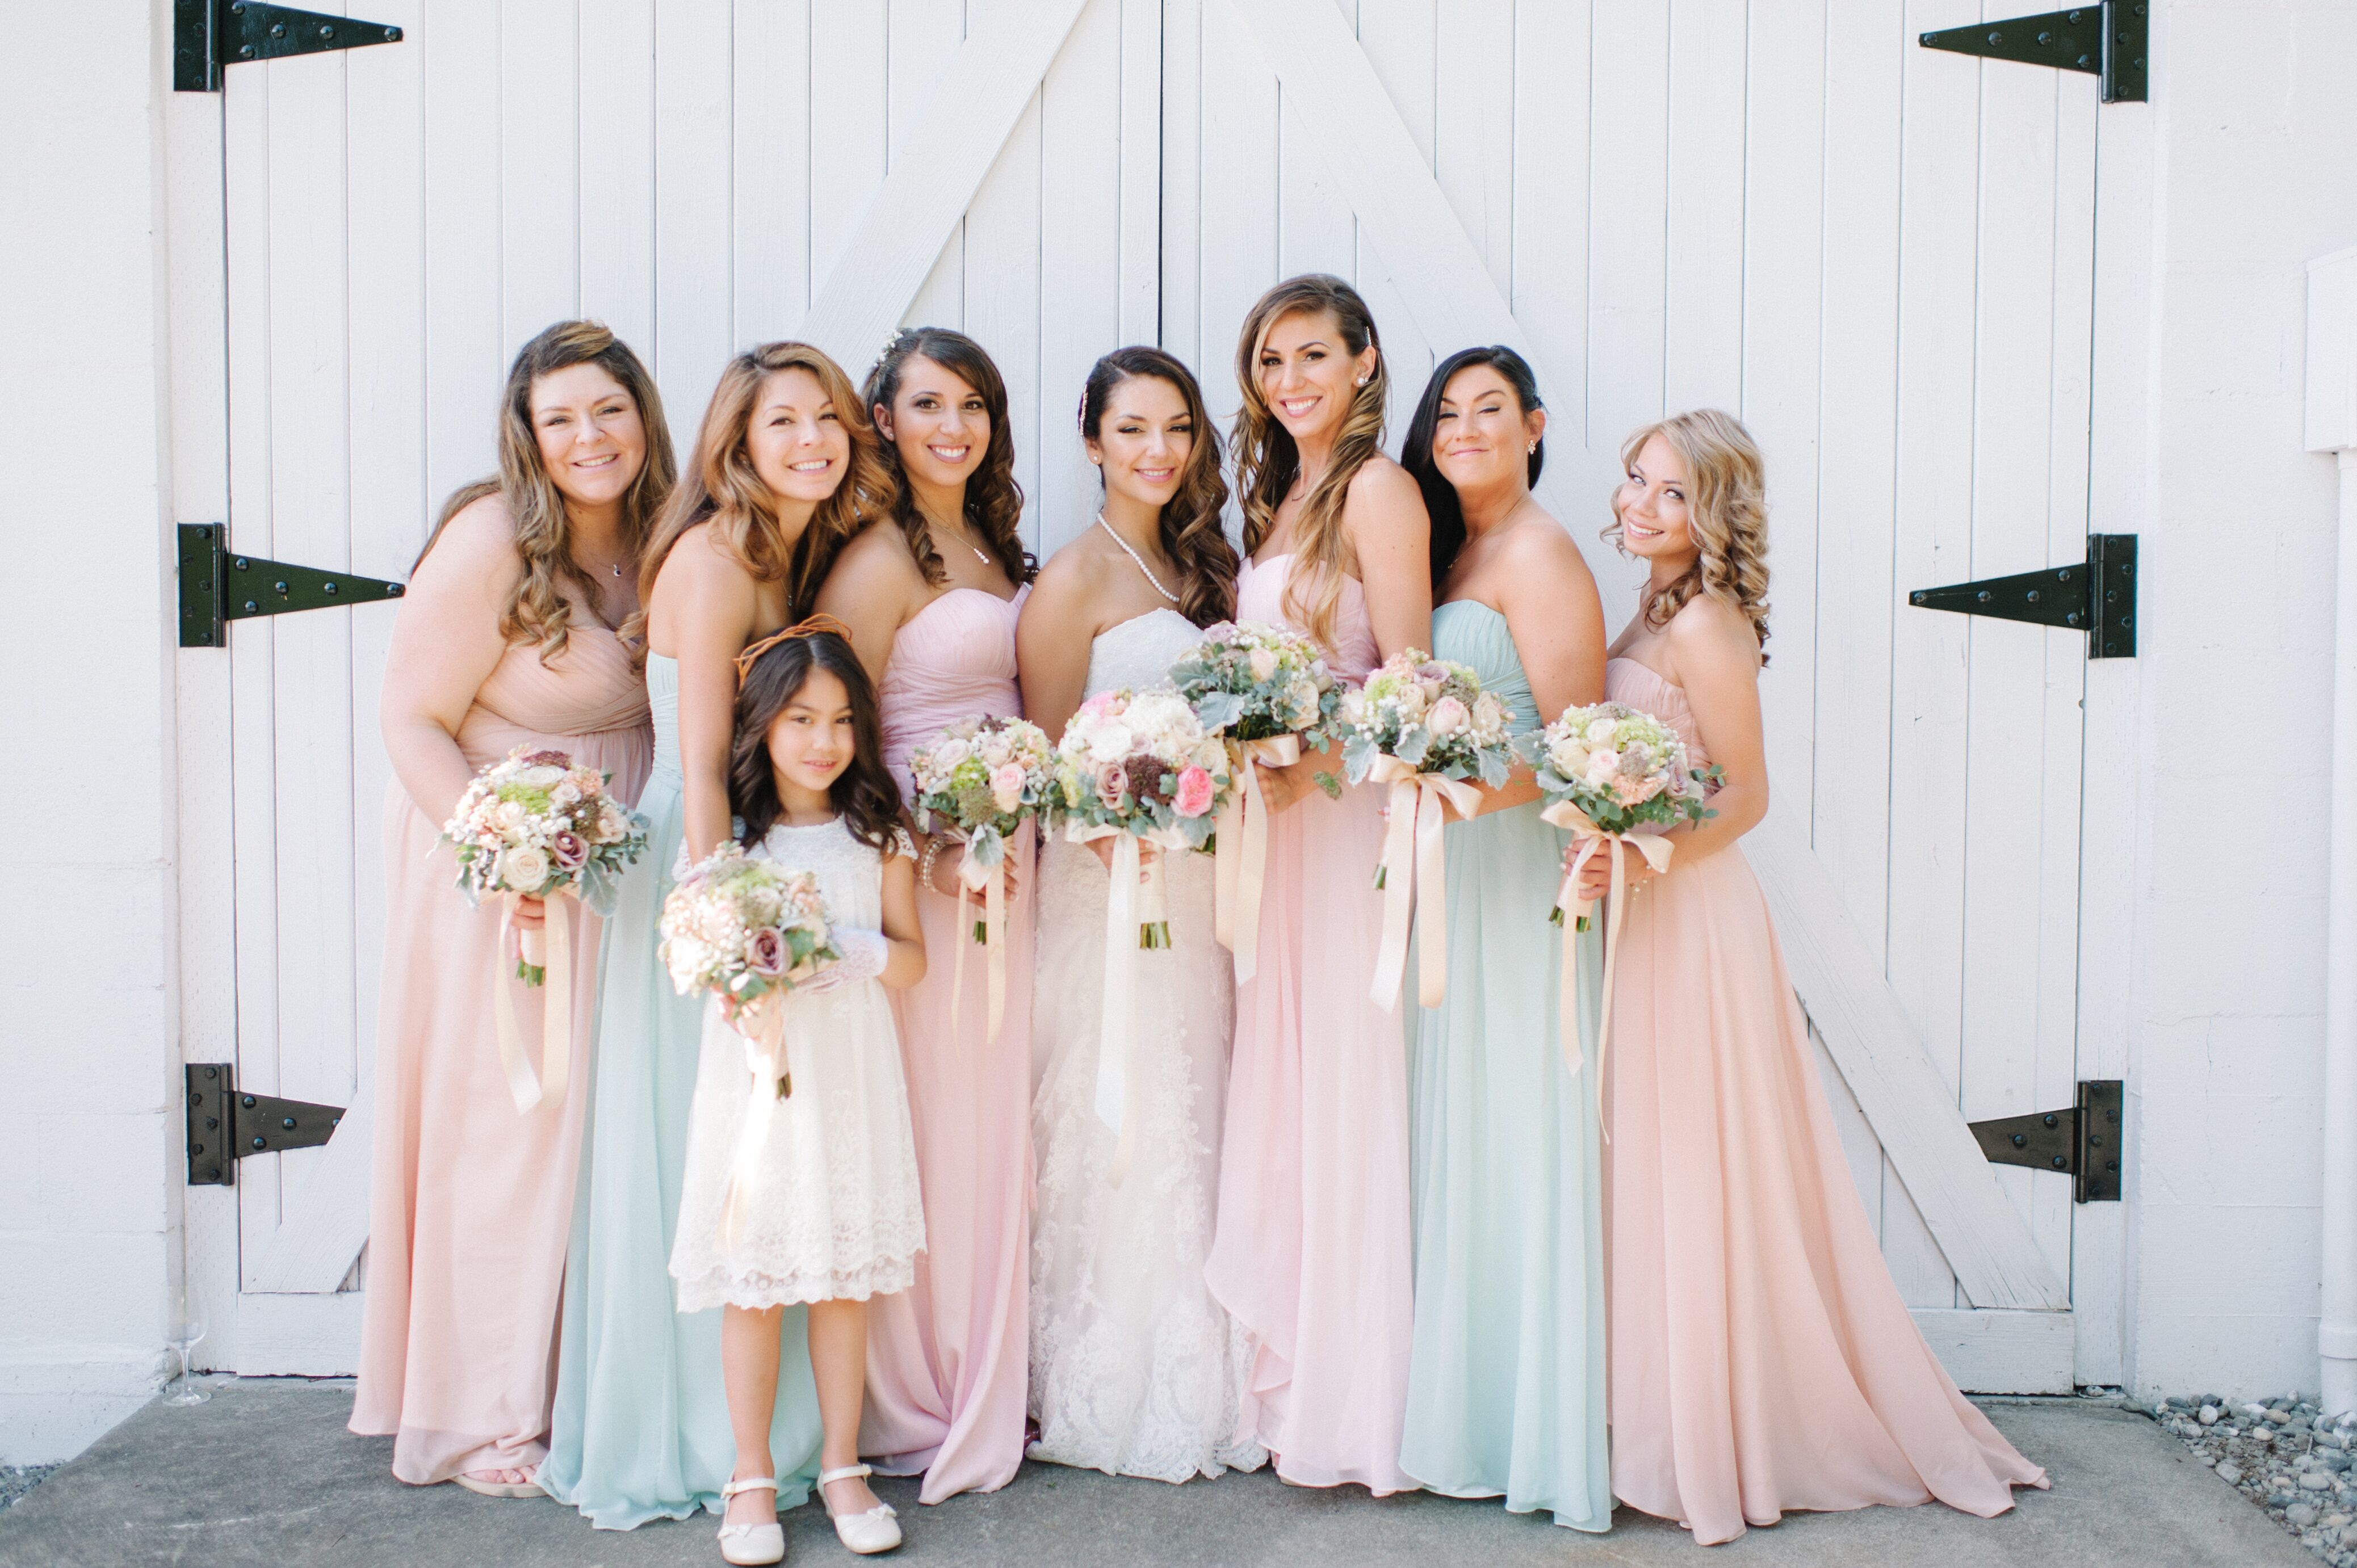 Pastel color bridesmaid dresses wedding dresses in jax pastel color bridesmaid dresses 64 ombrellifo Image collections